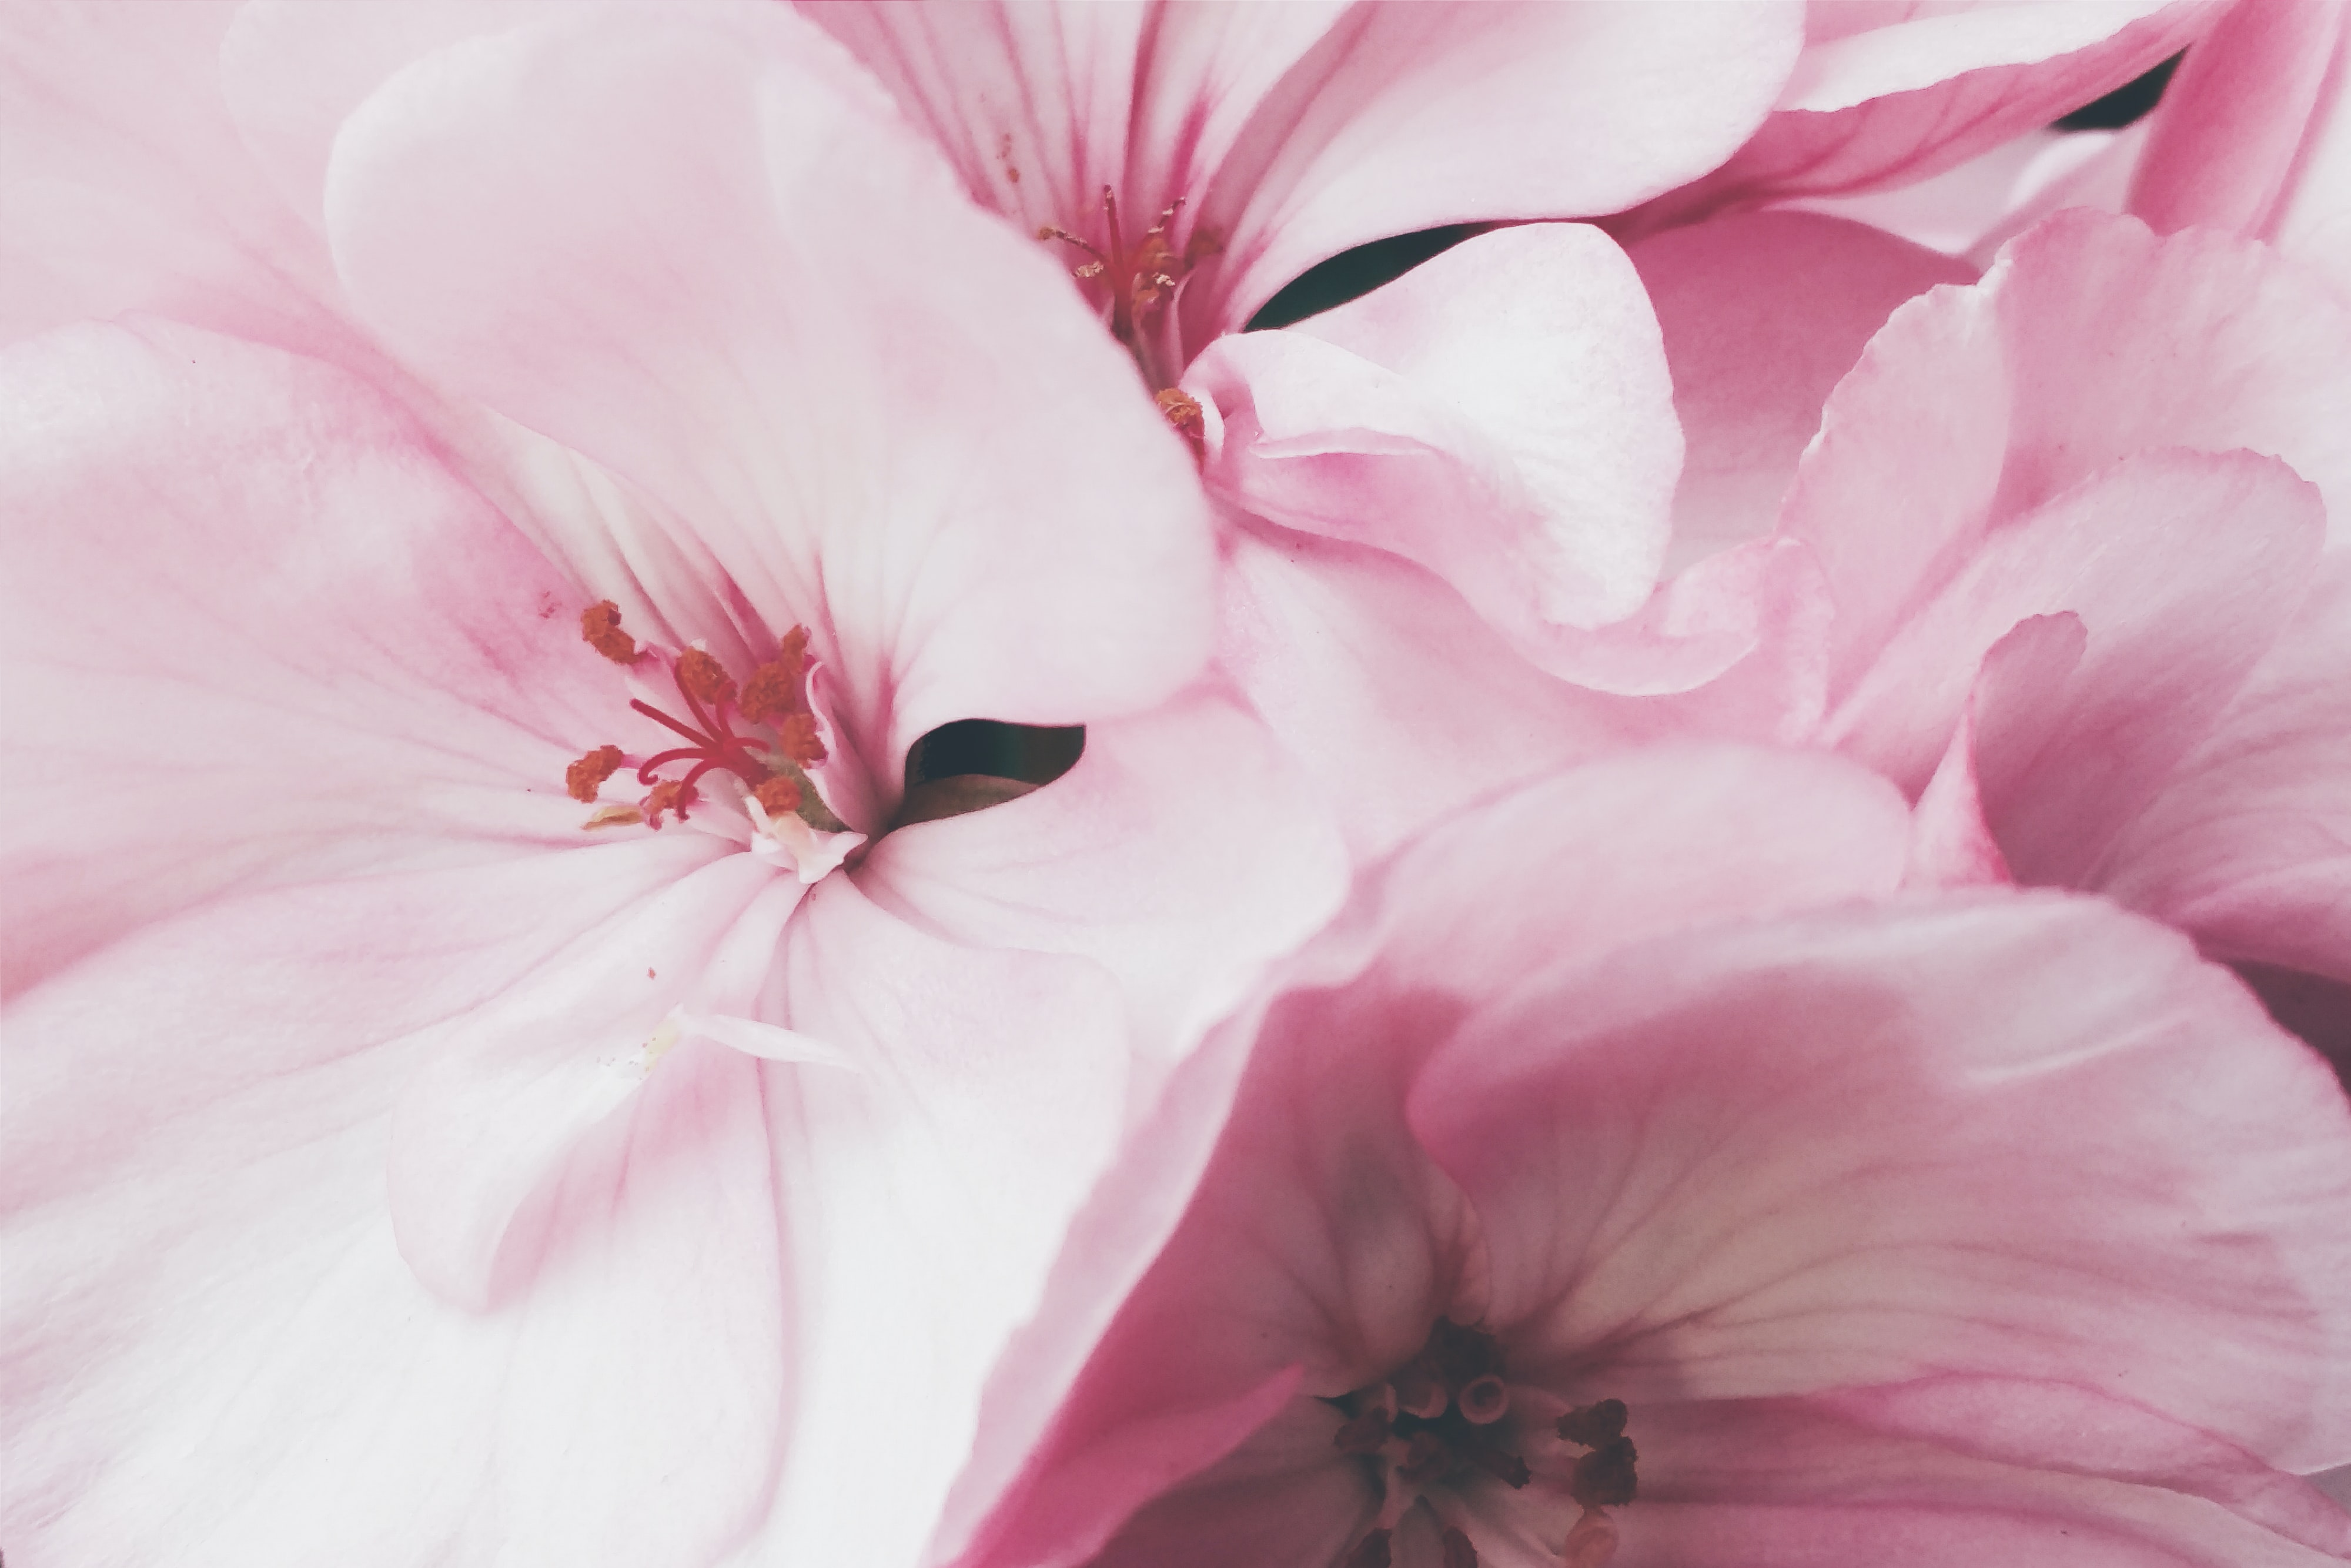 A macro shot of the petals on a pinkish white flower.